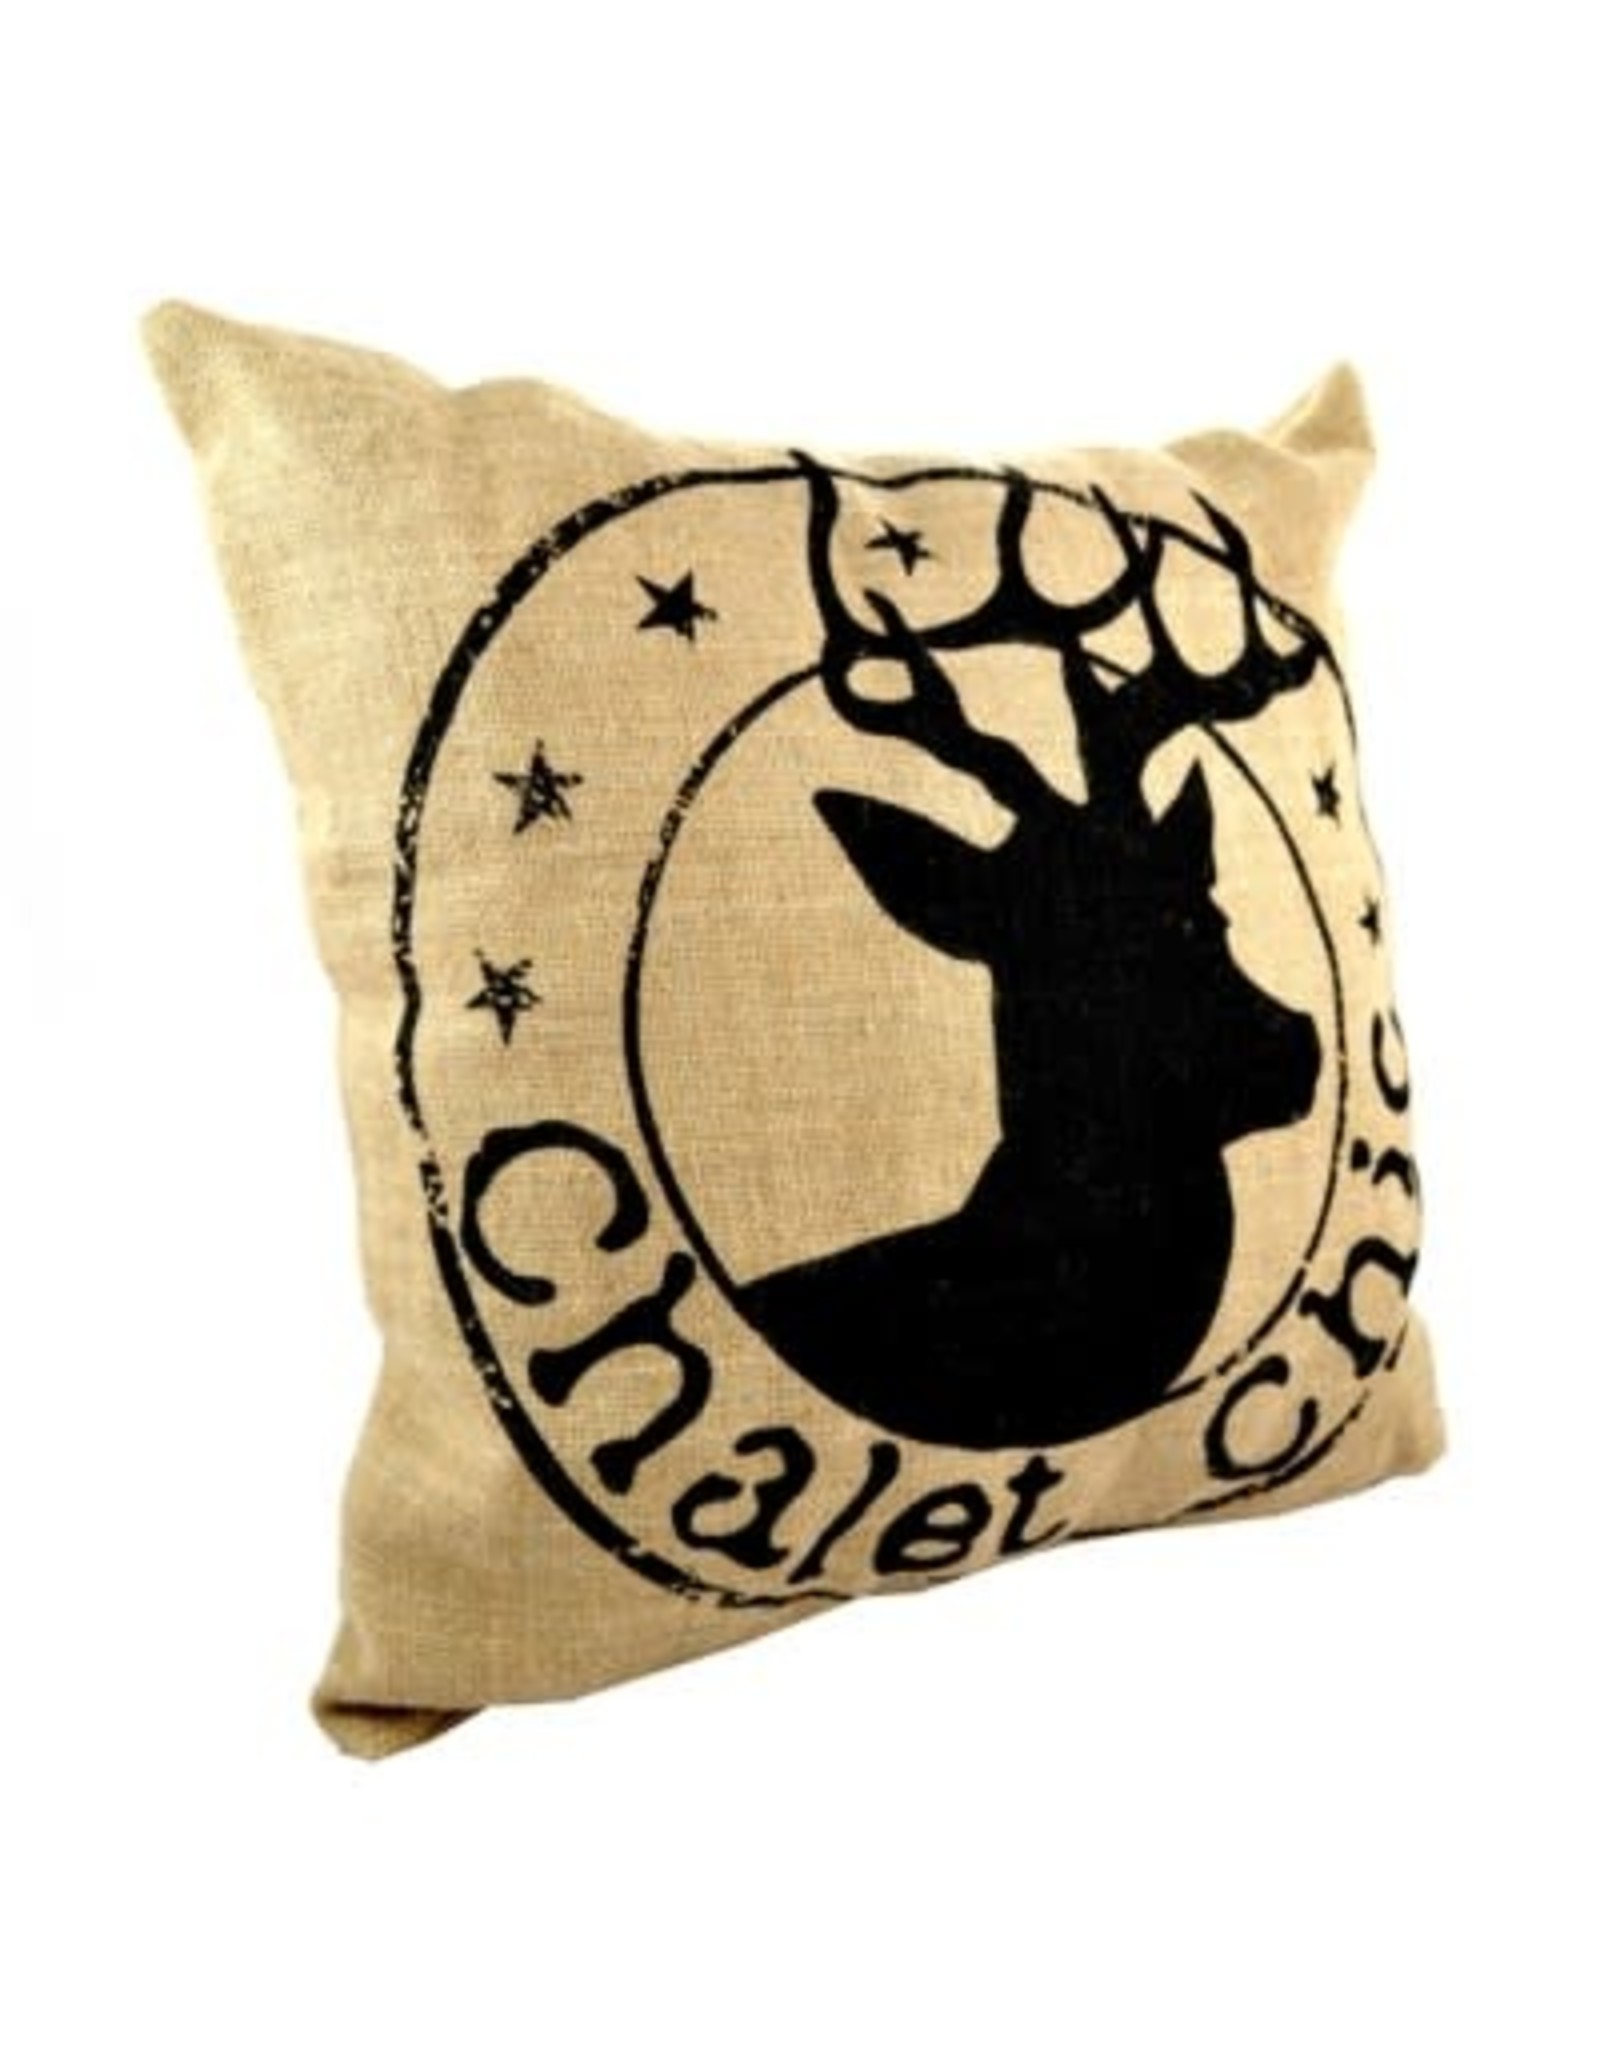 Coussin cerf - chalet chic